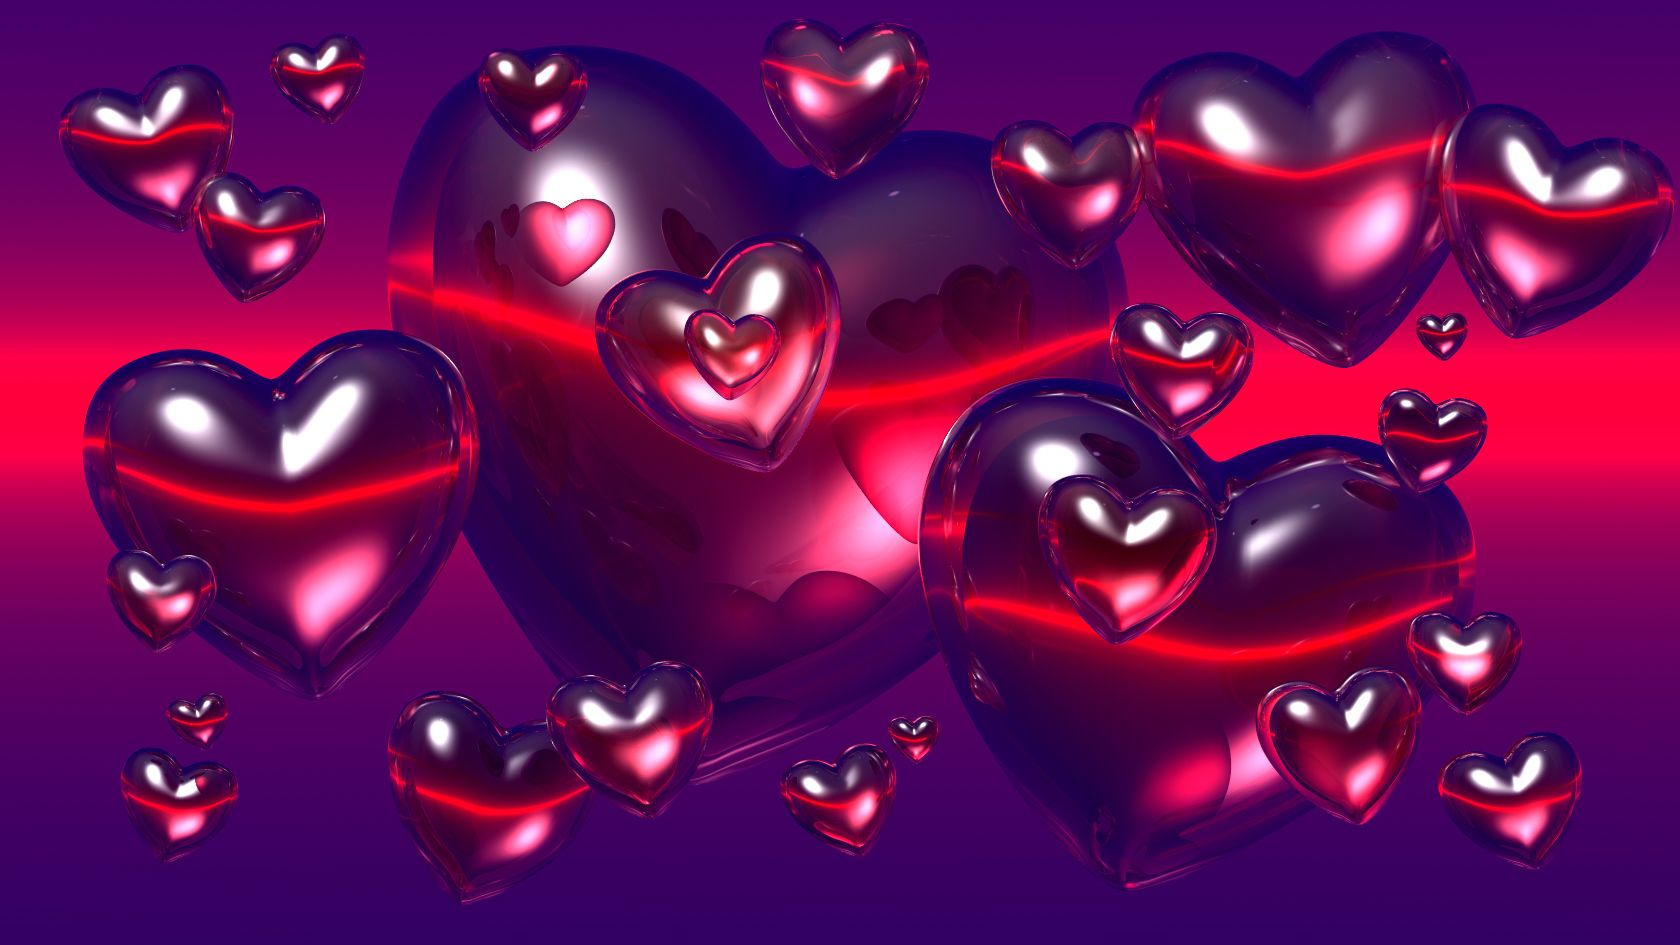 Heart 3d Wallpaper Free QziDt Is Lovely HD For Your Desktop Or Gadget